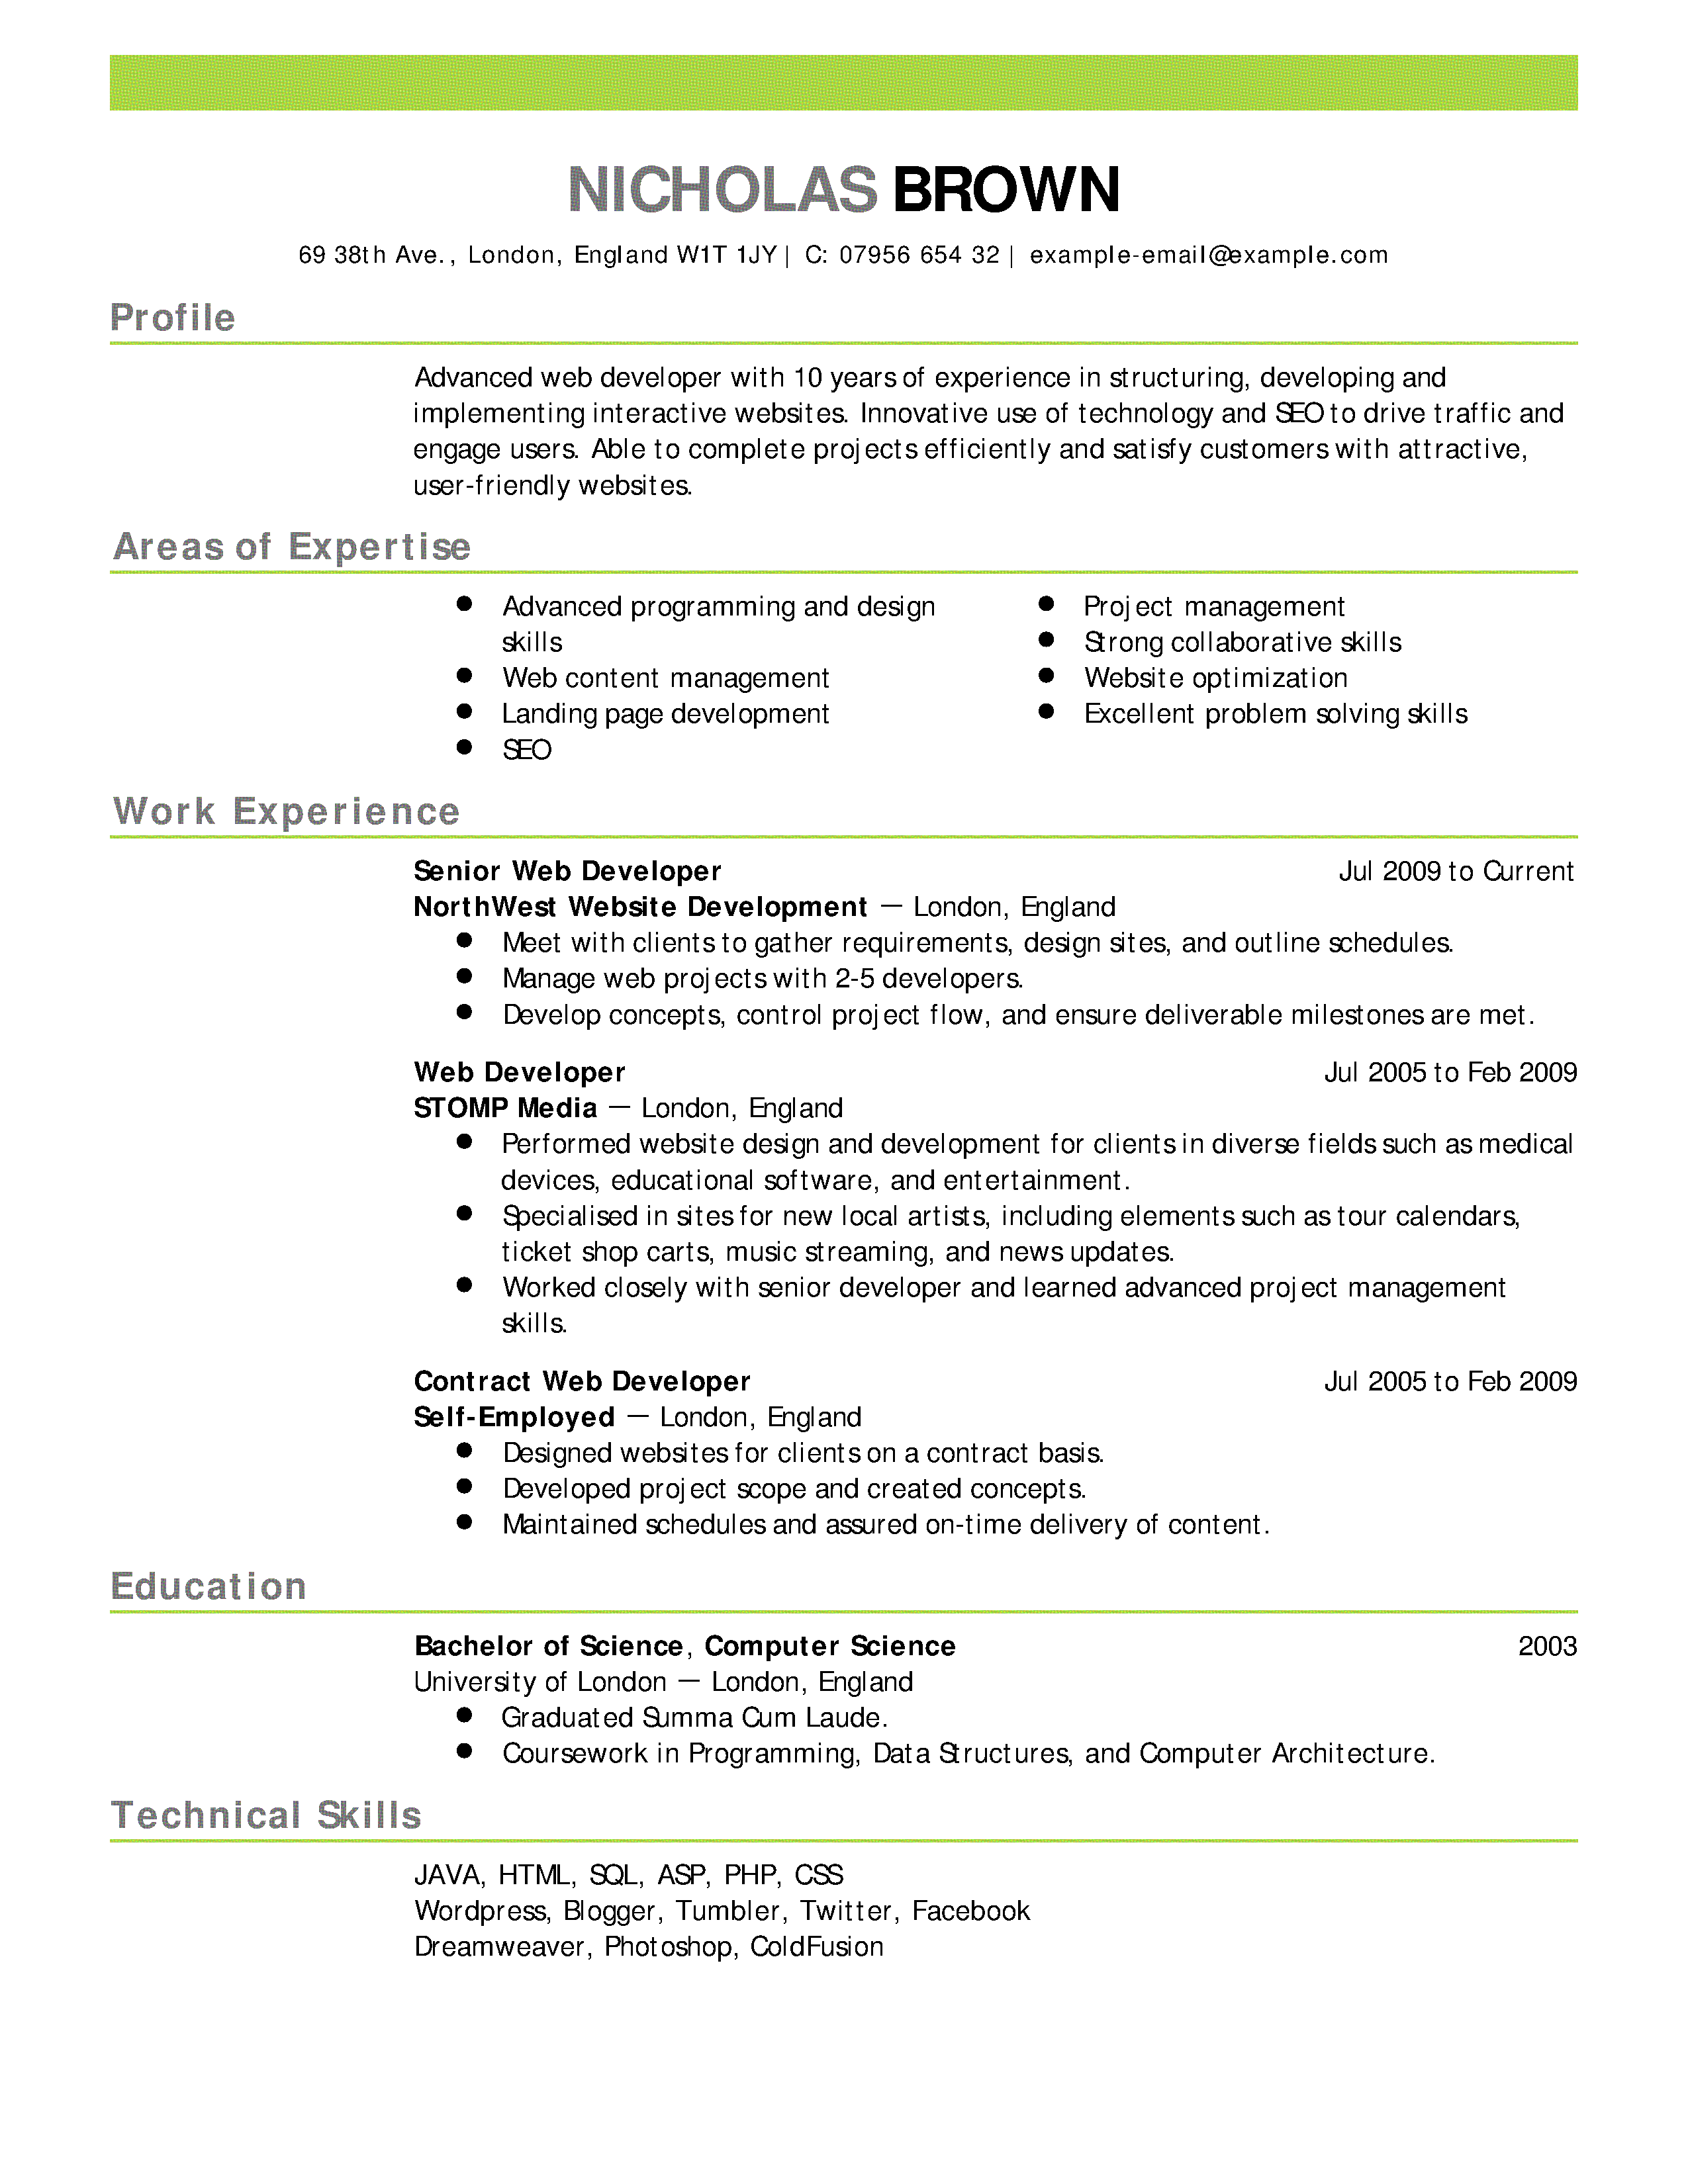 college admissions resume objective sample resume for a high school student seeking admission to college - Effective Resume